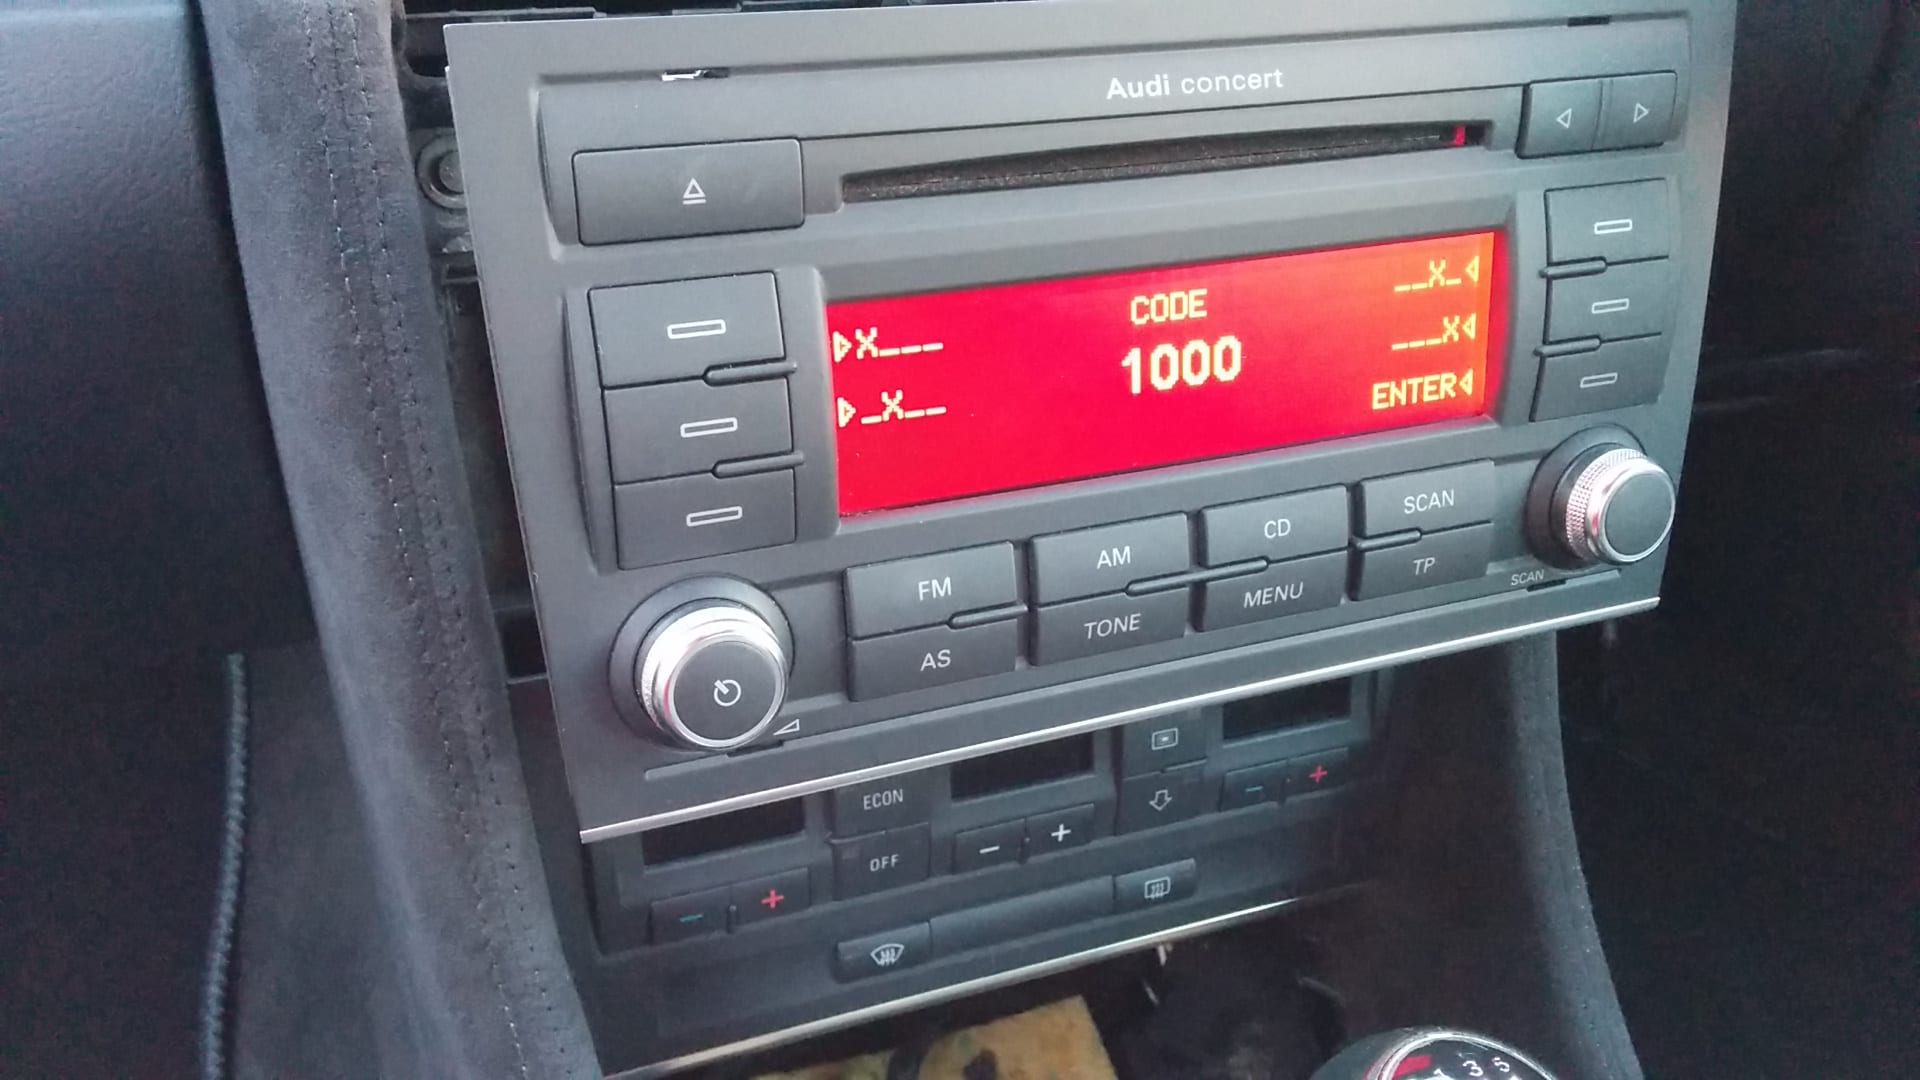 The Audi Android Bluetooth Ipod Dock Oem Radio Fiasco